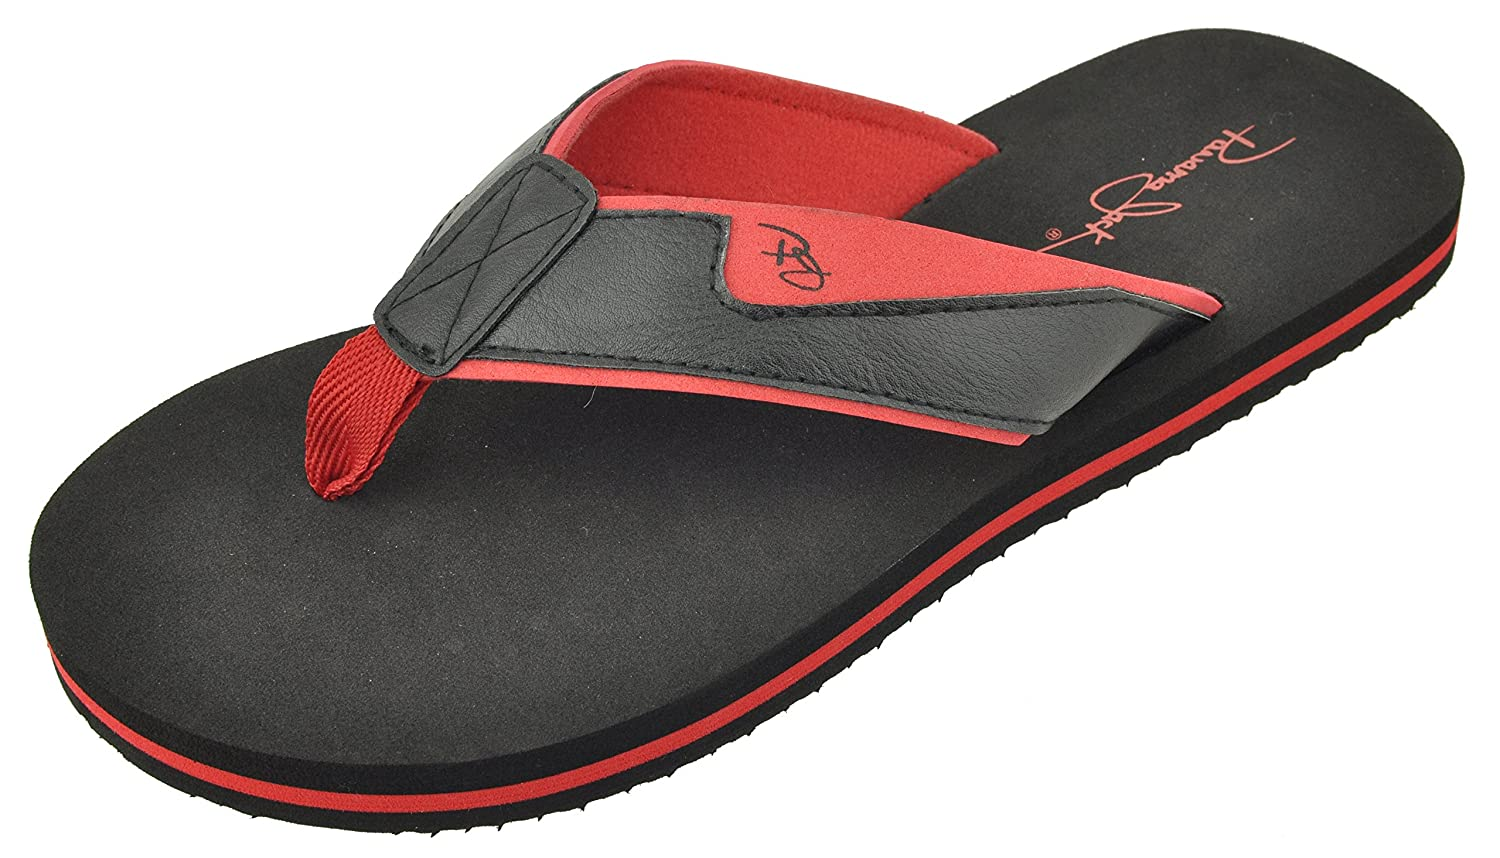 Panama Jack Men's Classic Casual Beach Time Sport Flip Flop Sandals, Size 8 to 13